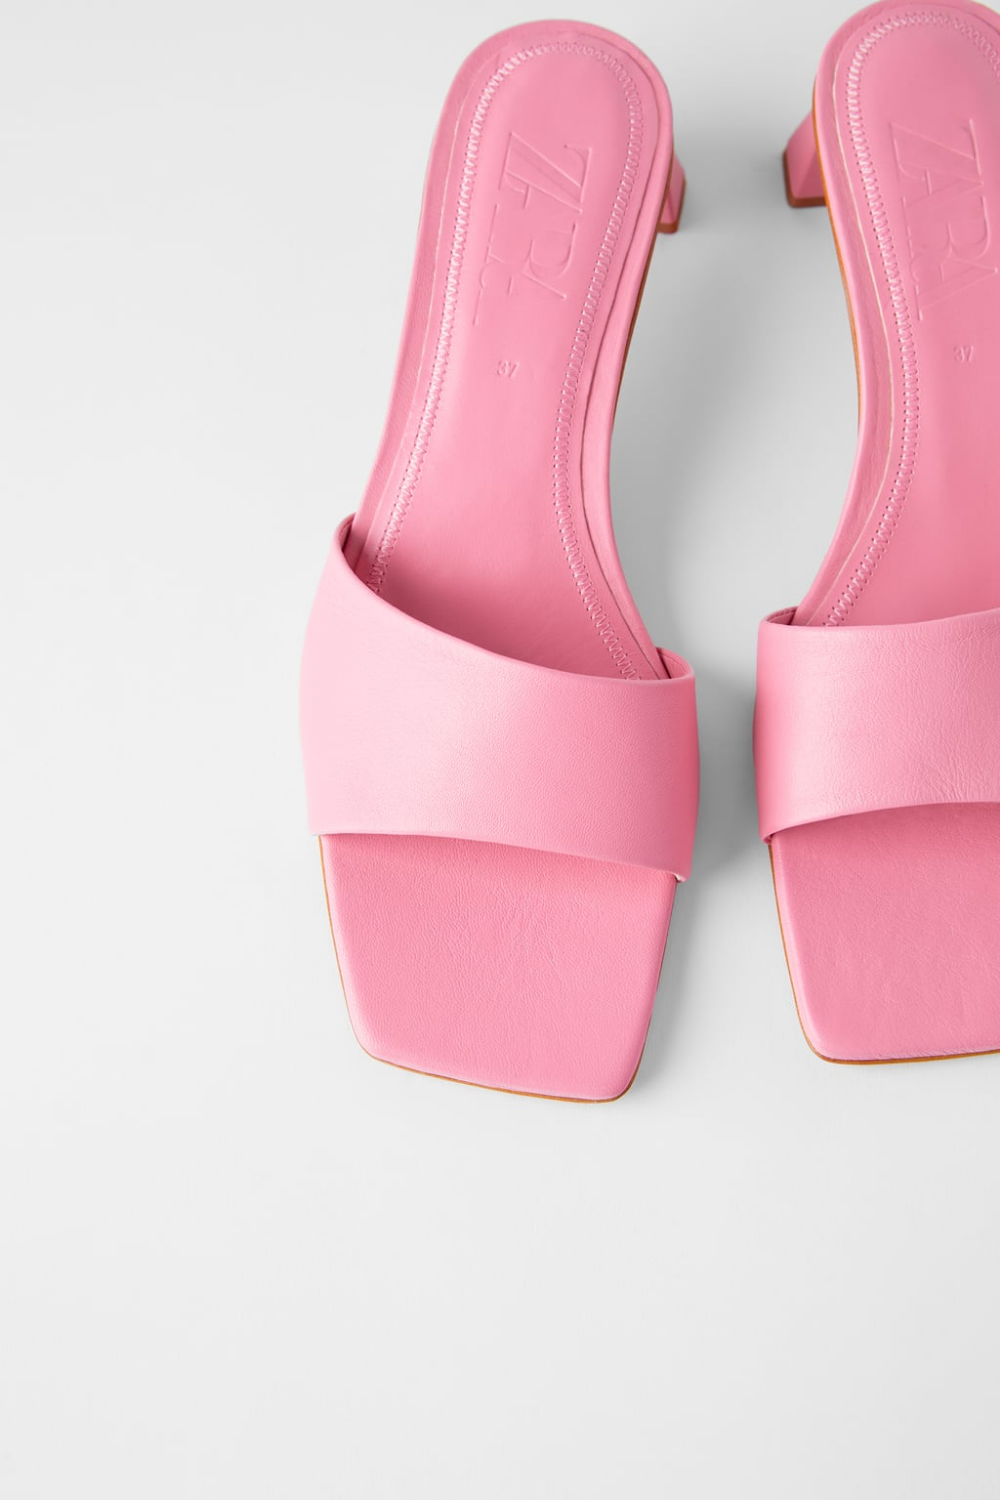 Leather Mid Heel Mules View All Shoes Woman Zara Hungary In 2020